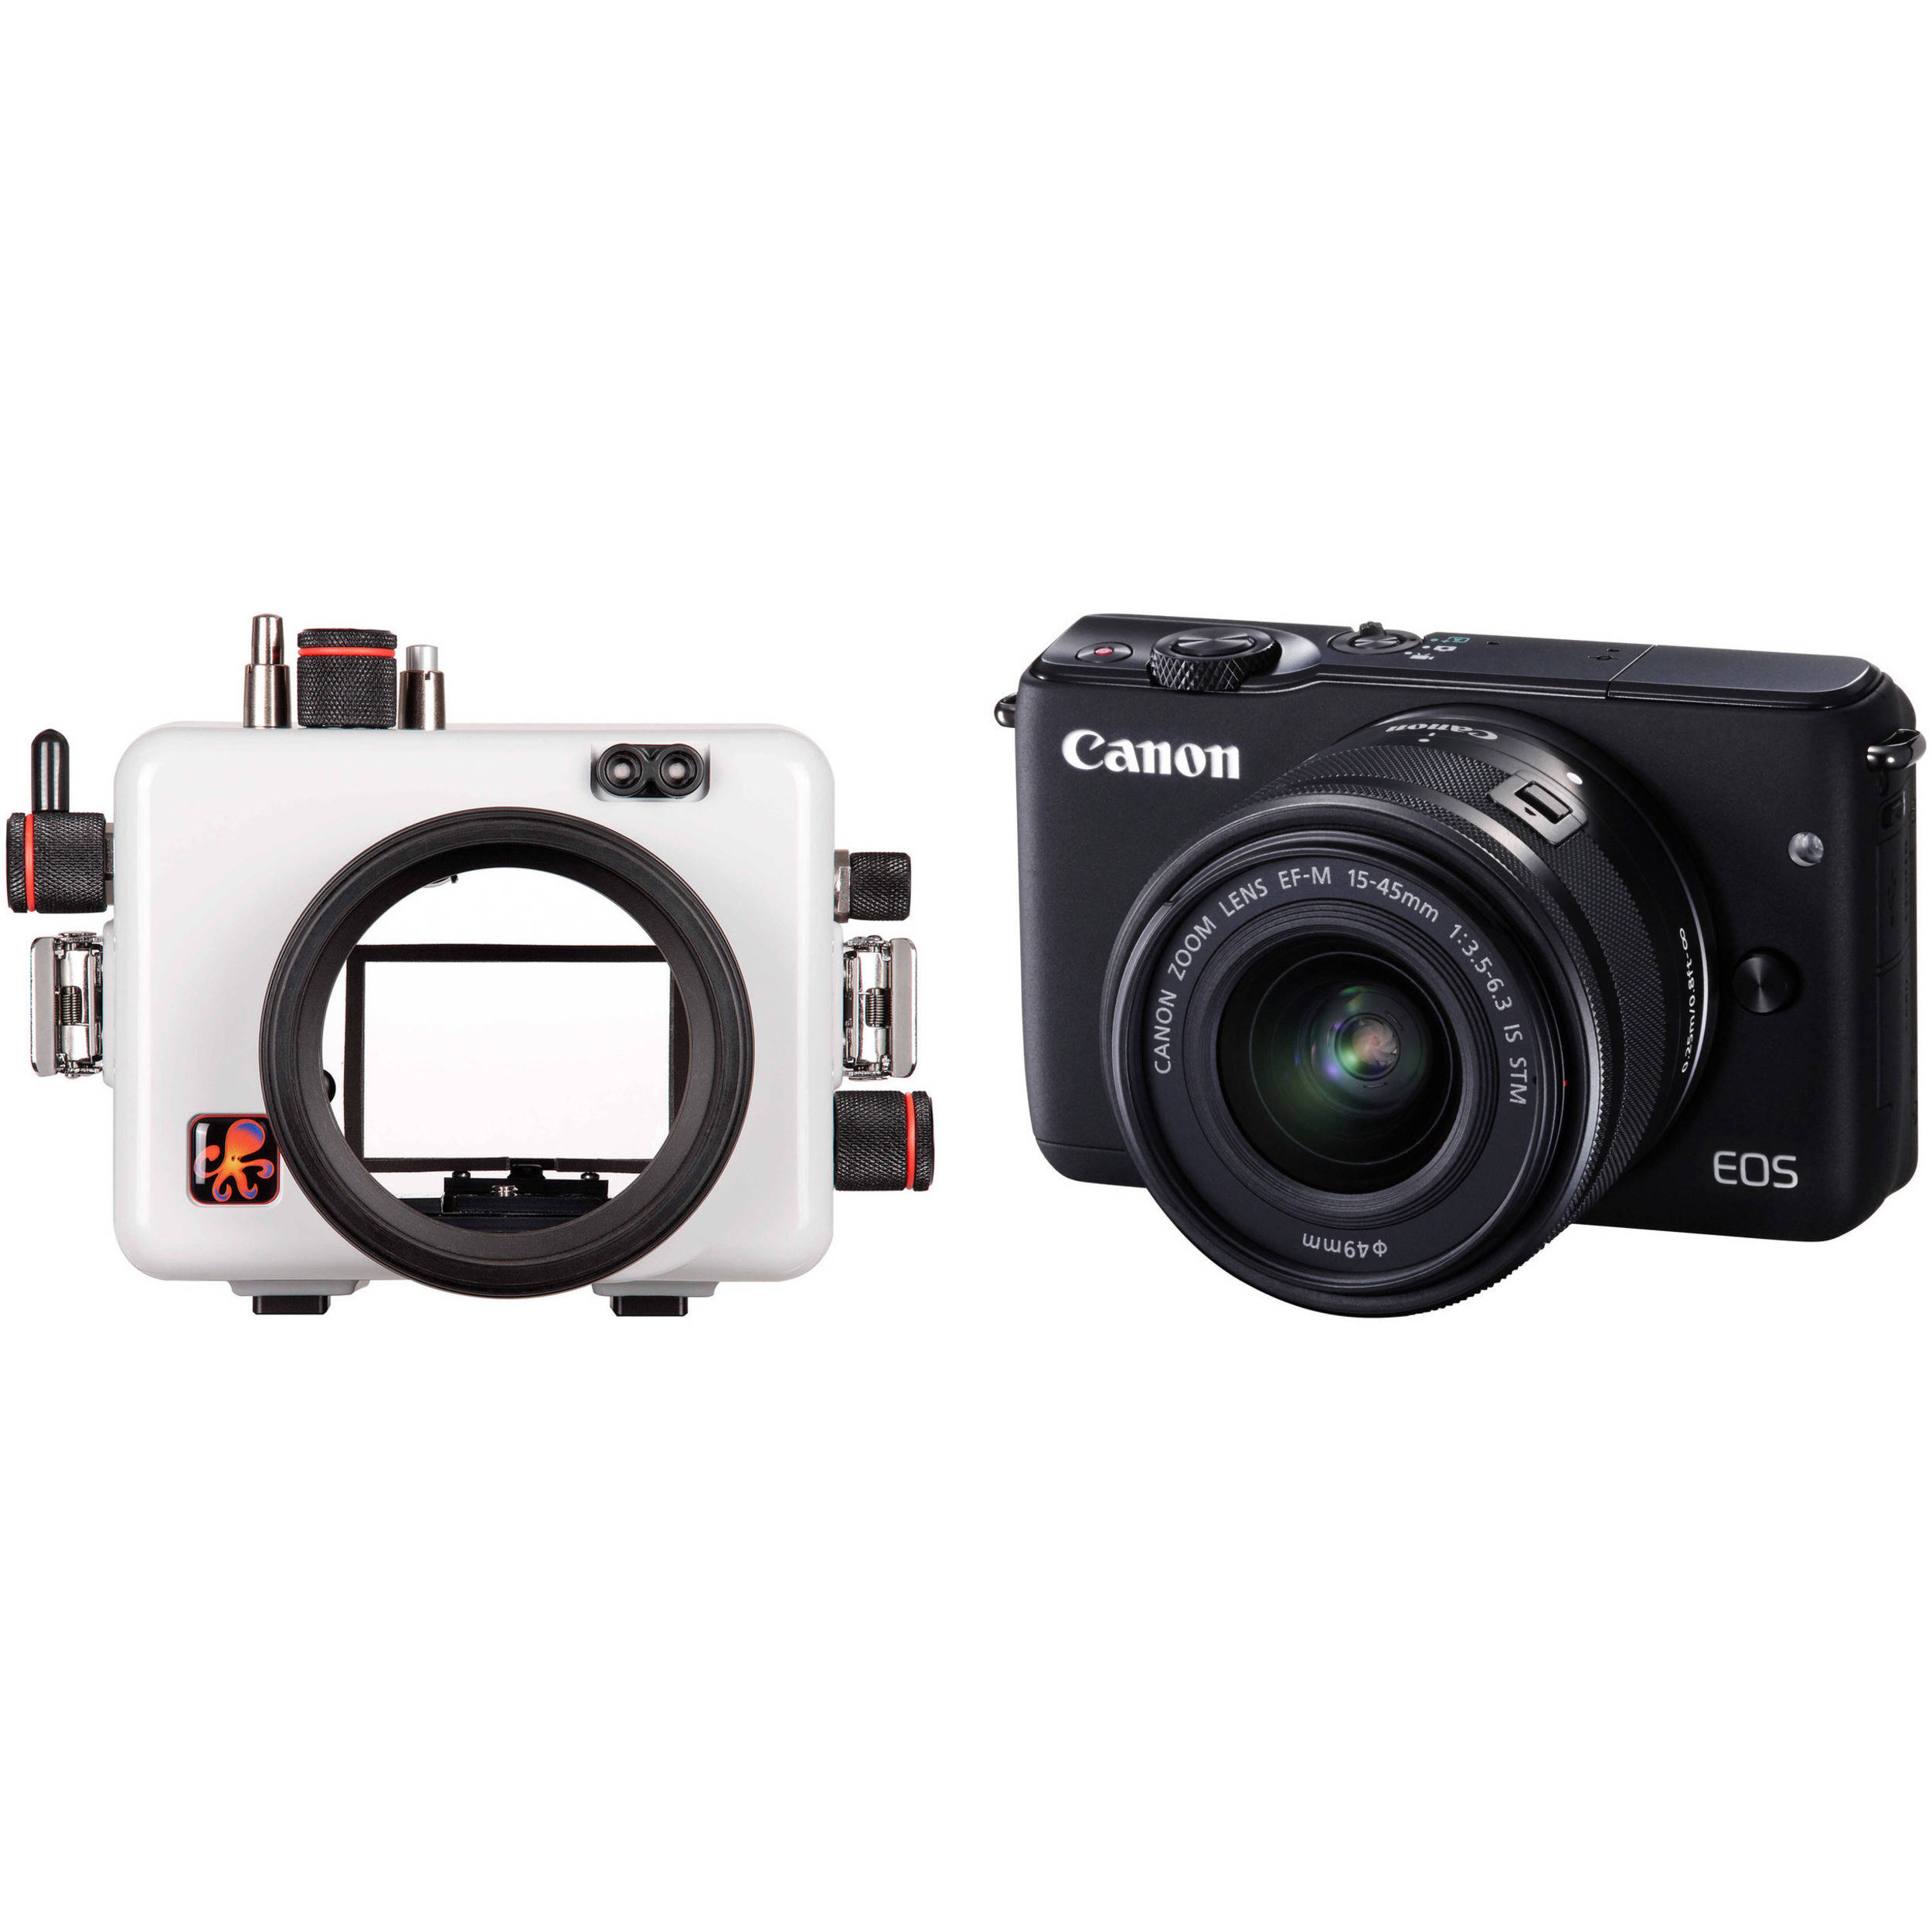 Ikelite Underwater Housing And Canon Eos M10 Digital Camera Bh Ef M 15 45mm Is Stm White With Lens Kit